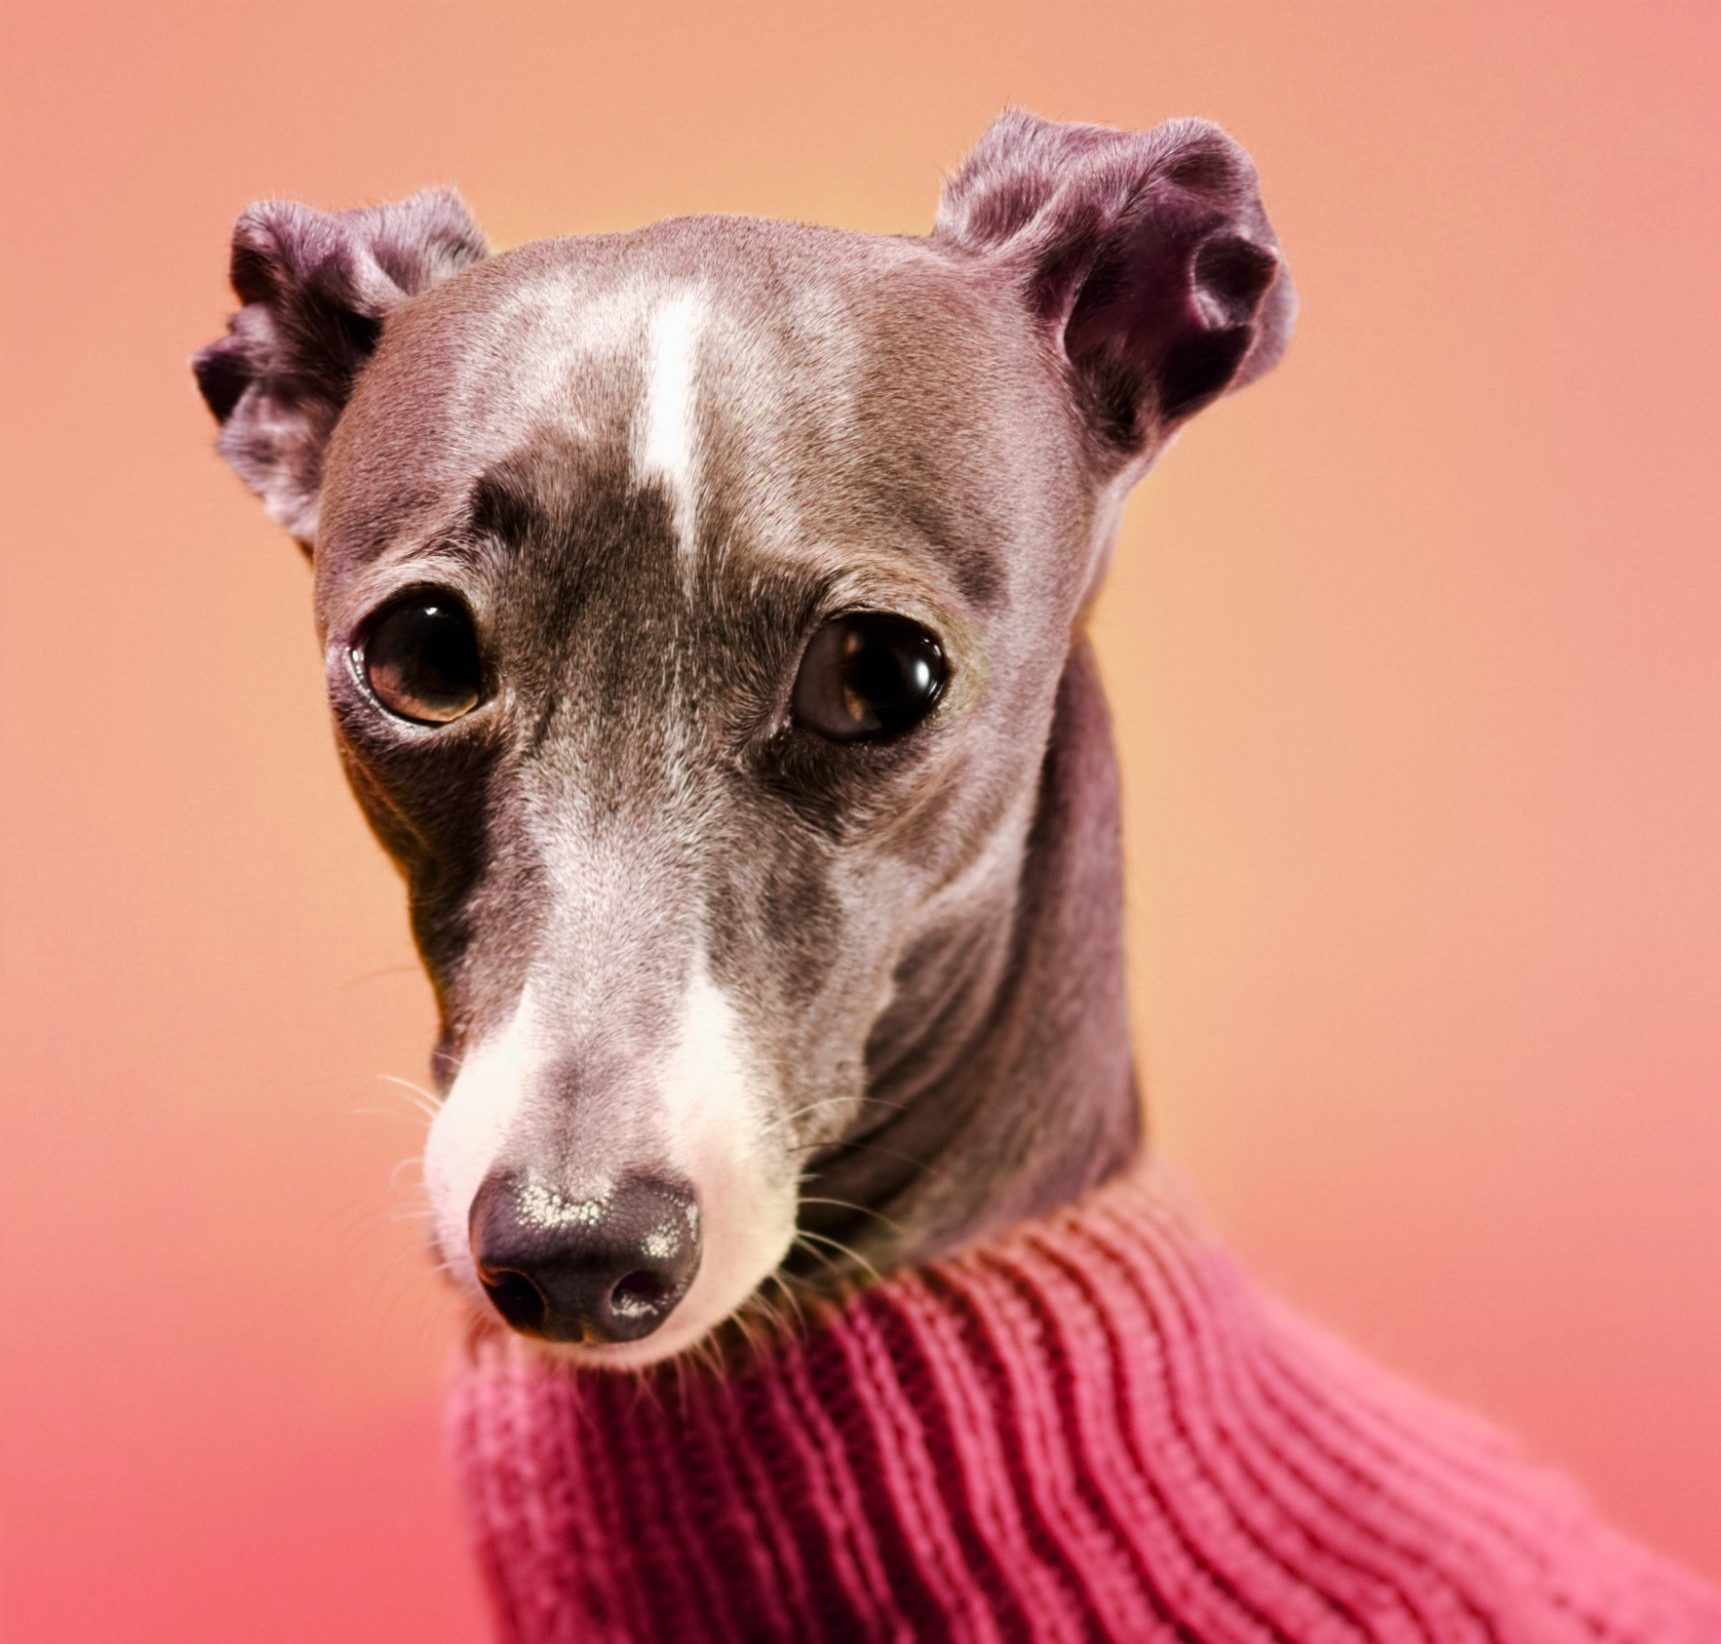 Sad Janet book cover, greyhound in a pink sweater, ombre background